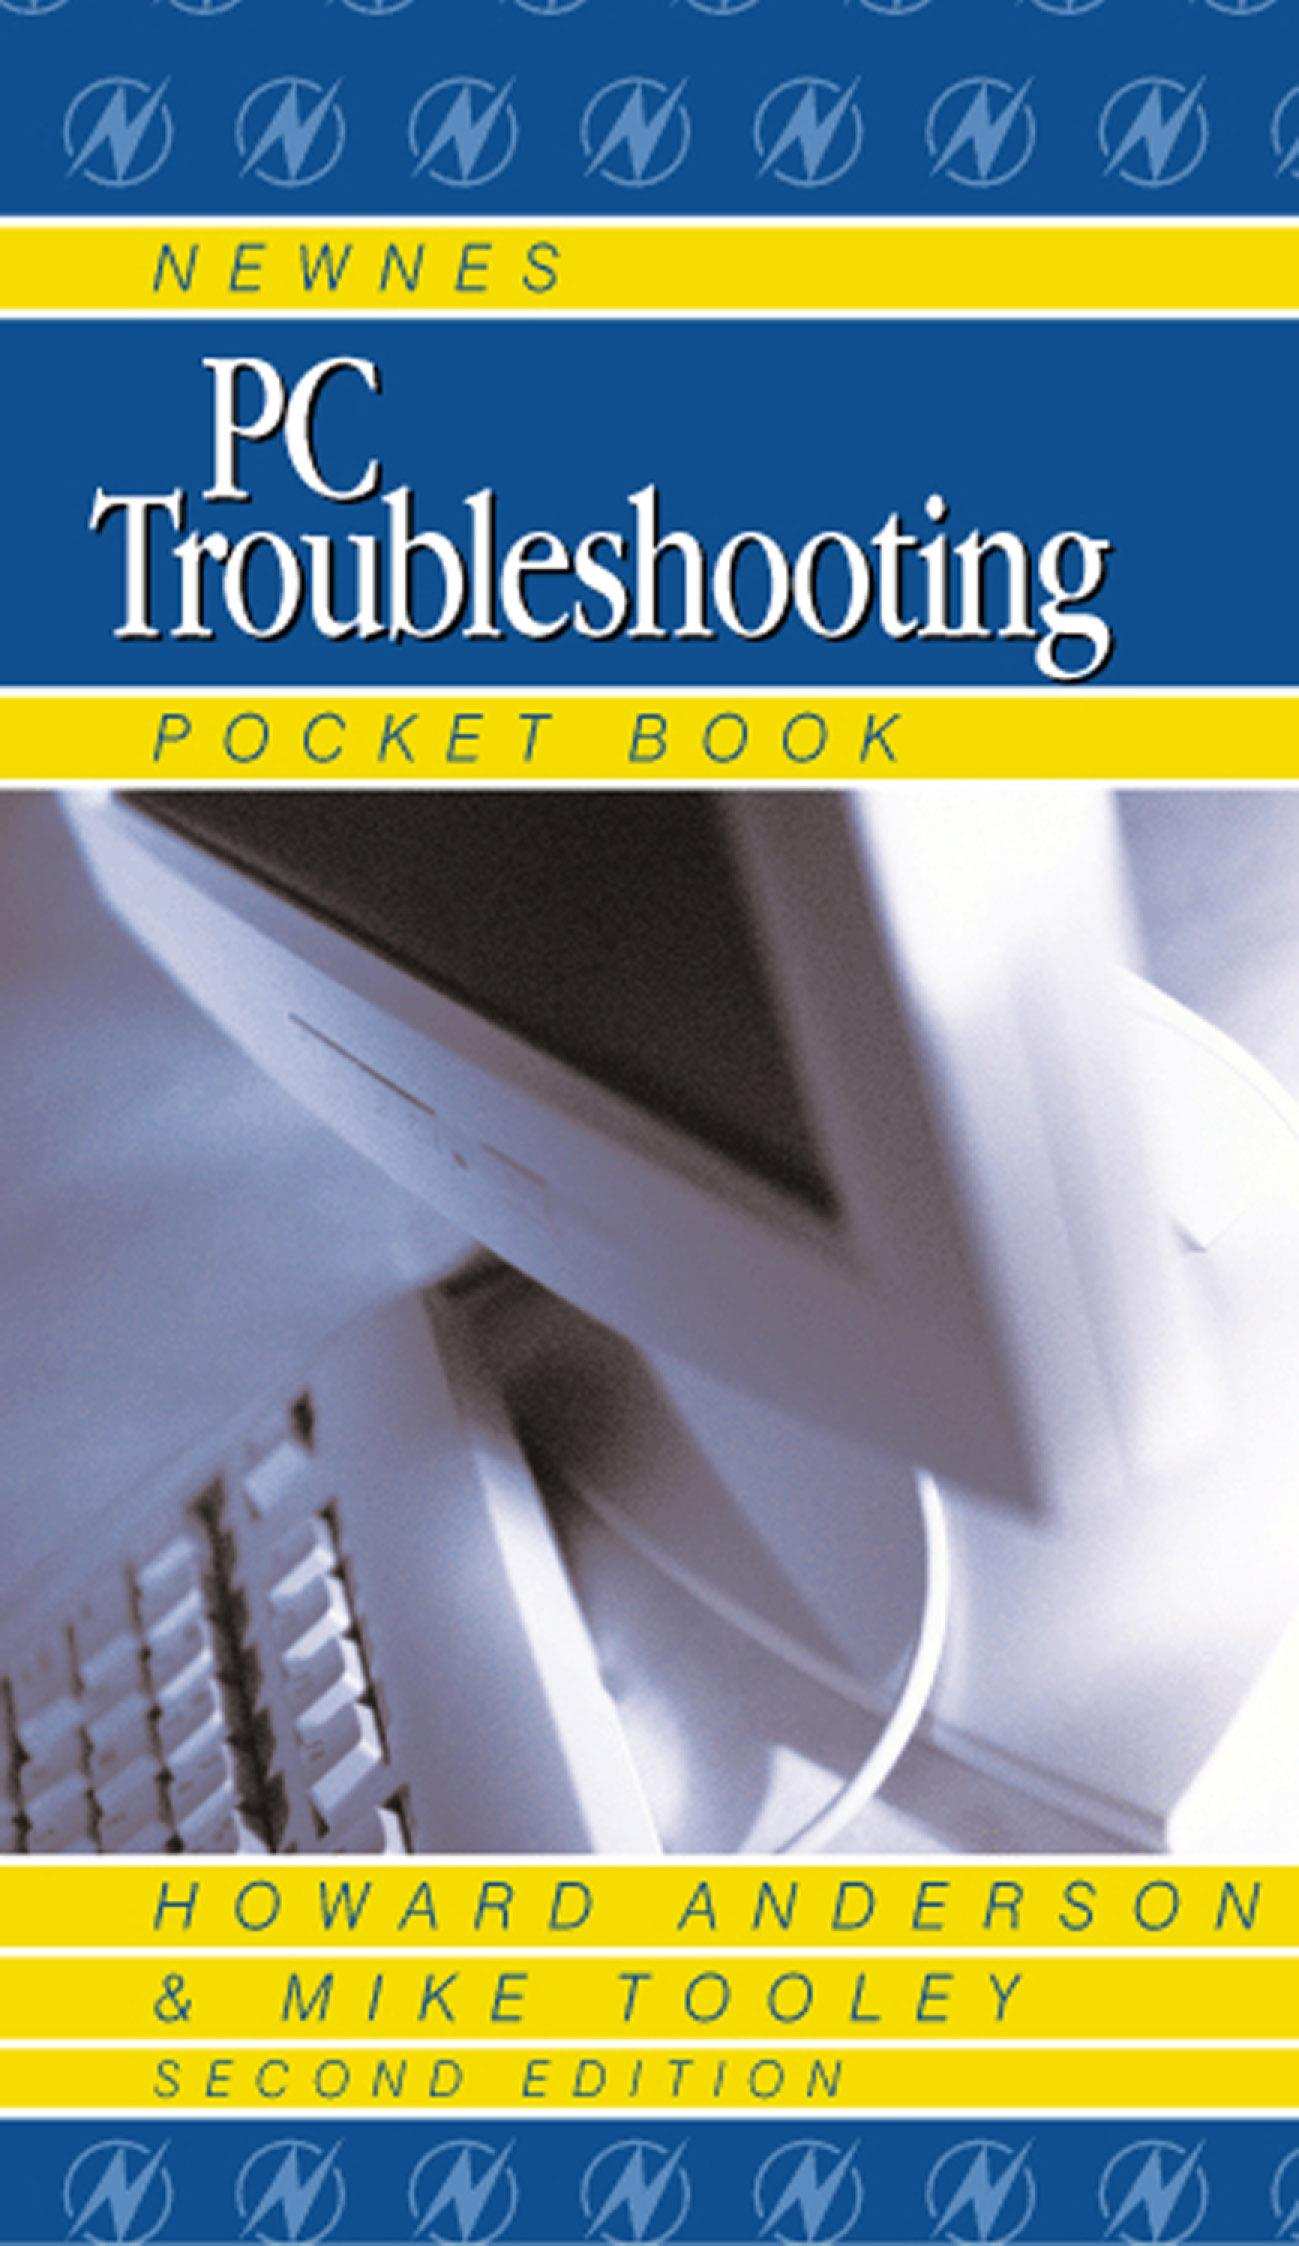 Picture of Newnes PC Troubleshooting Pocket Book